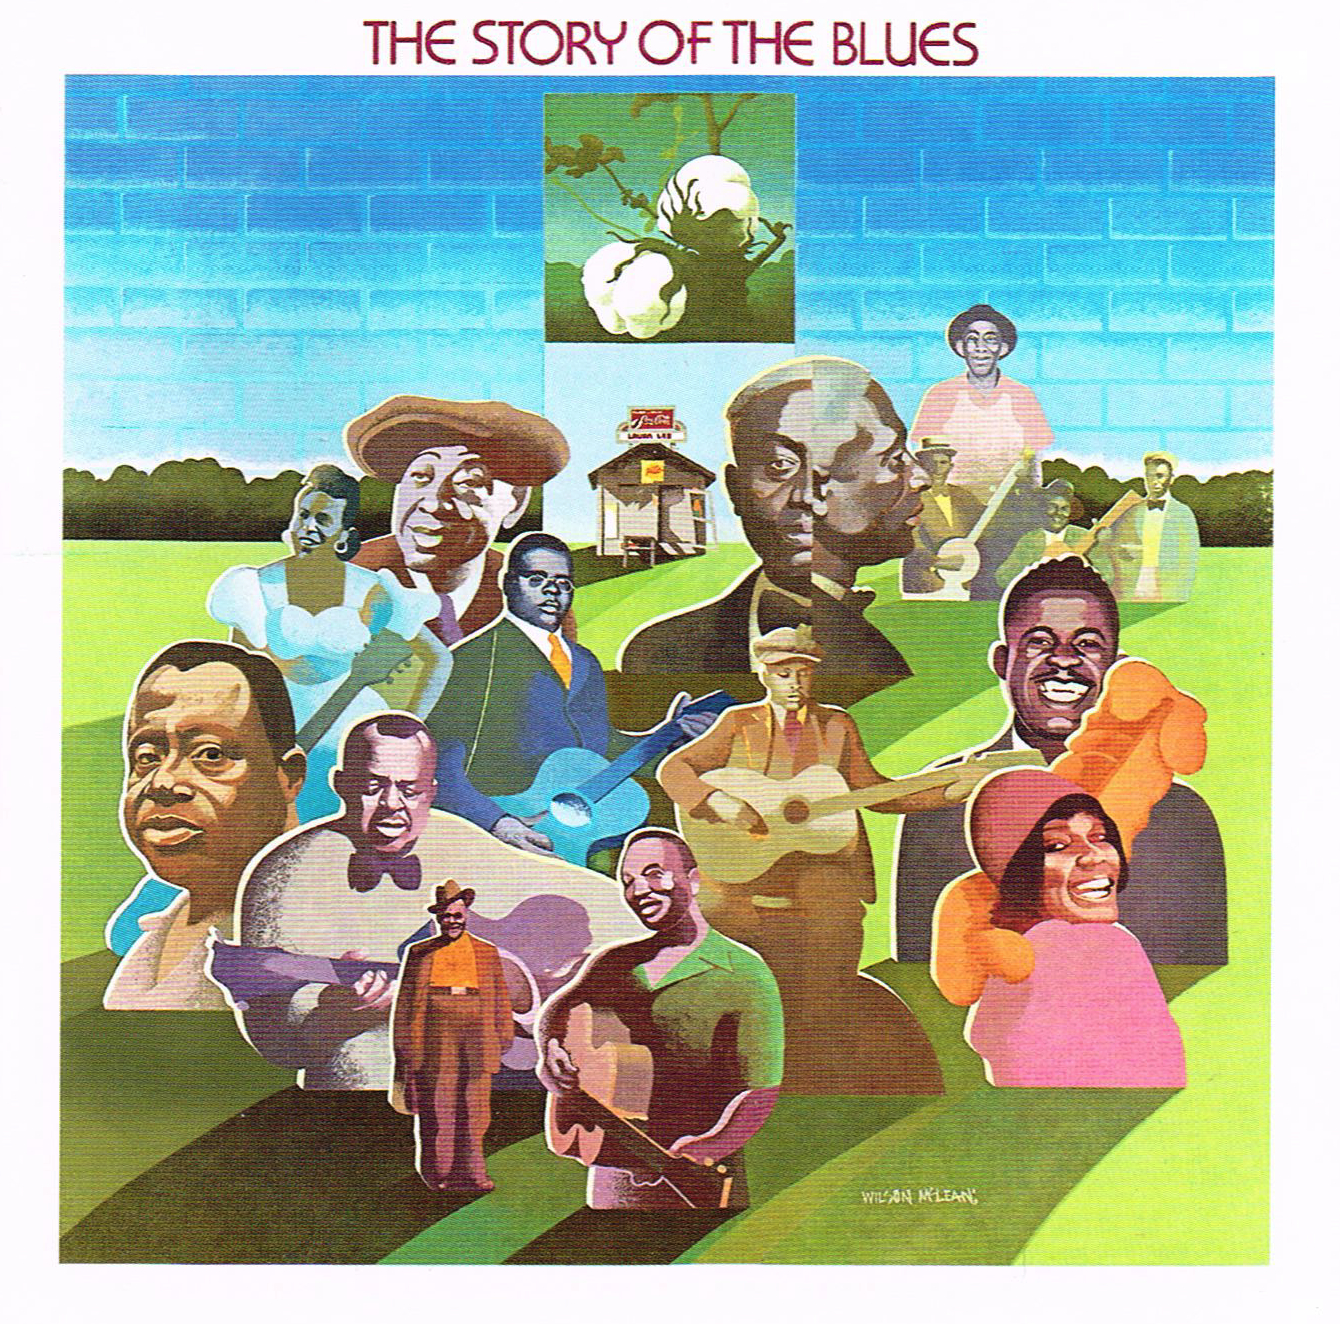 Caption: The cover for &quot;The Story of the Blues,&quot; as issued in the U.S. by Columbia Records.